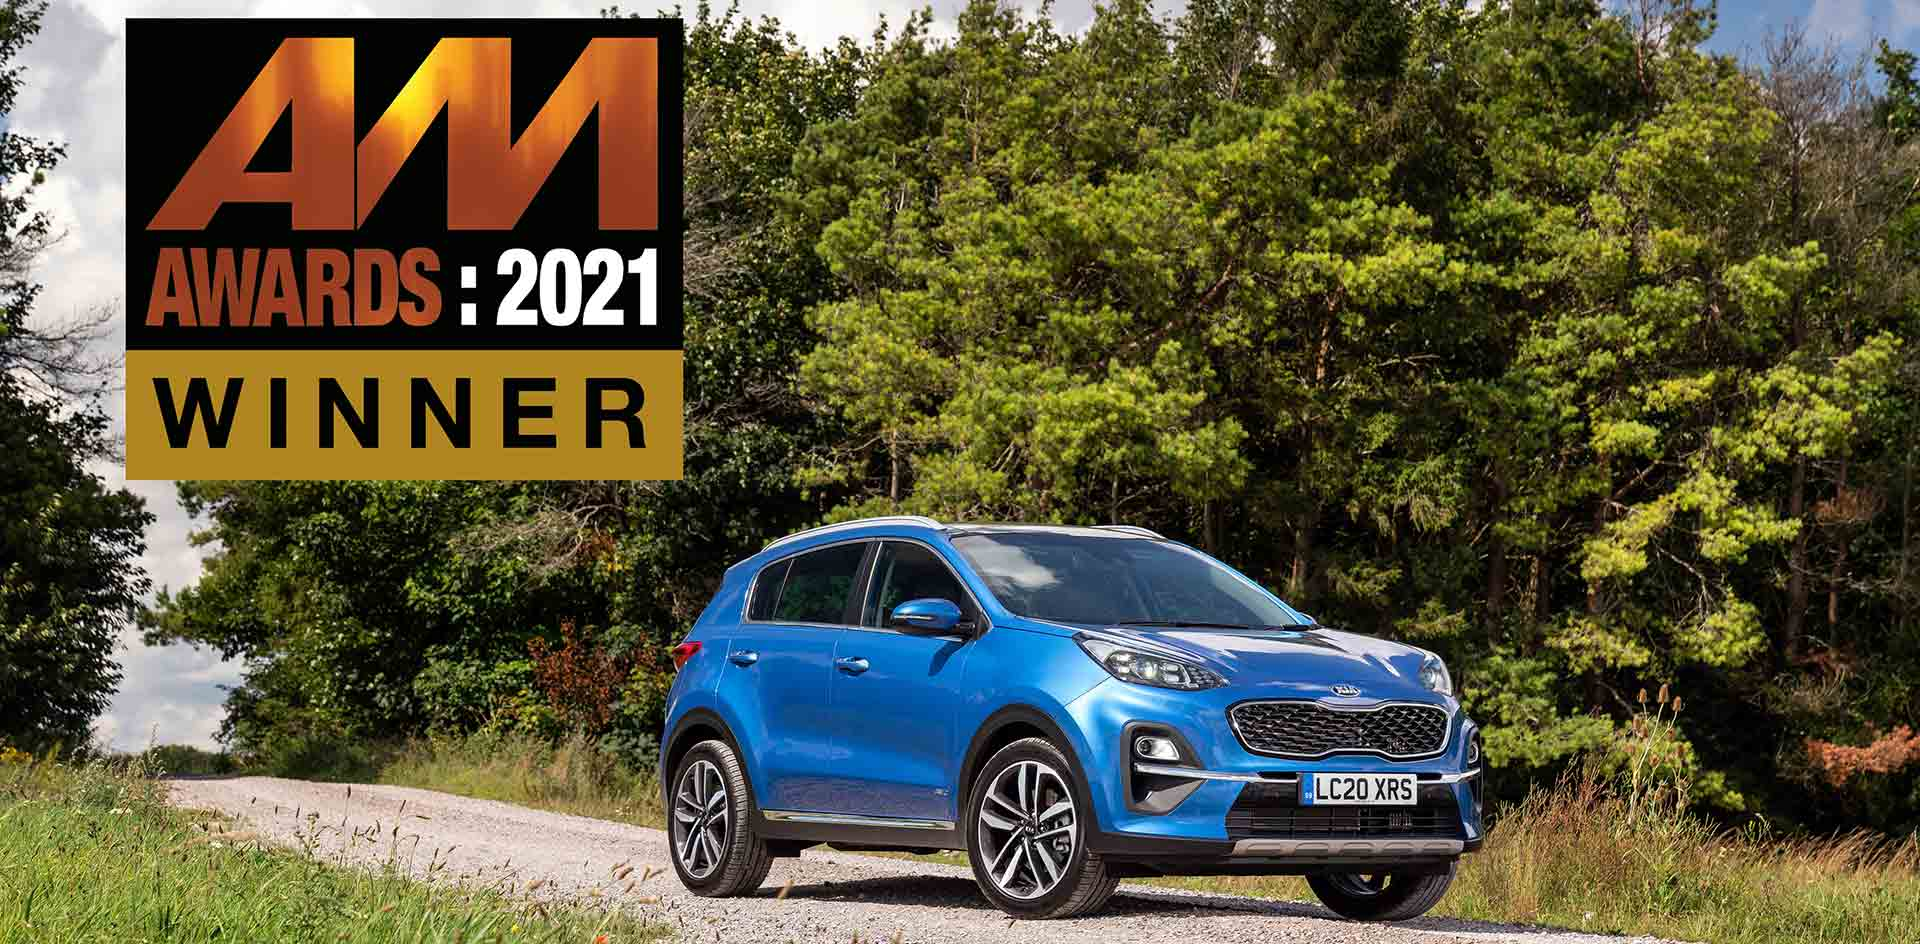 SPORTAGE PICKS UP 'USED CAR OF THE YEAR' AWARD